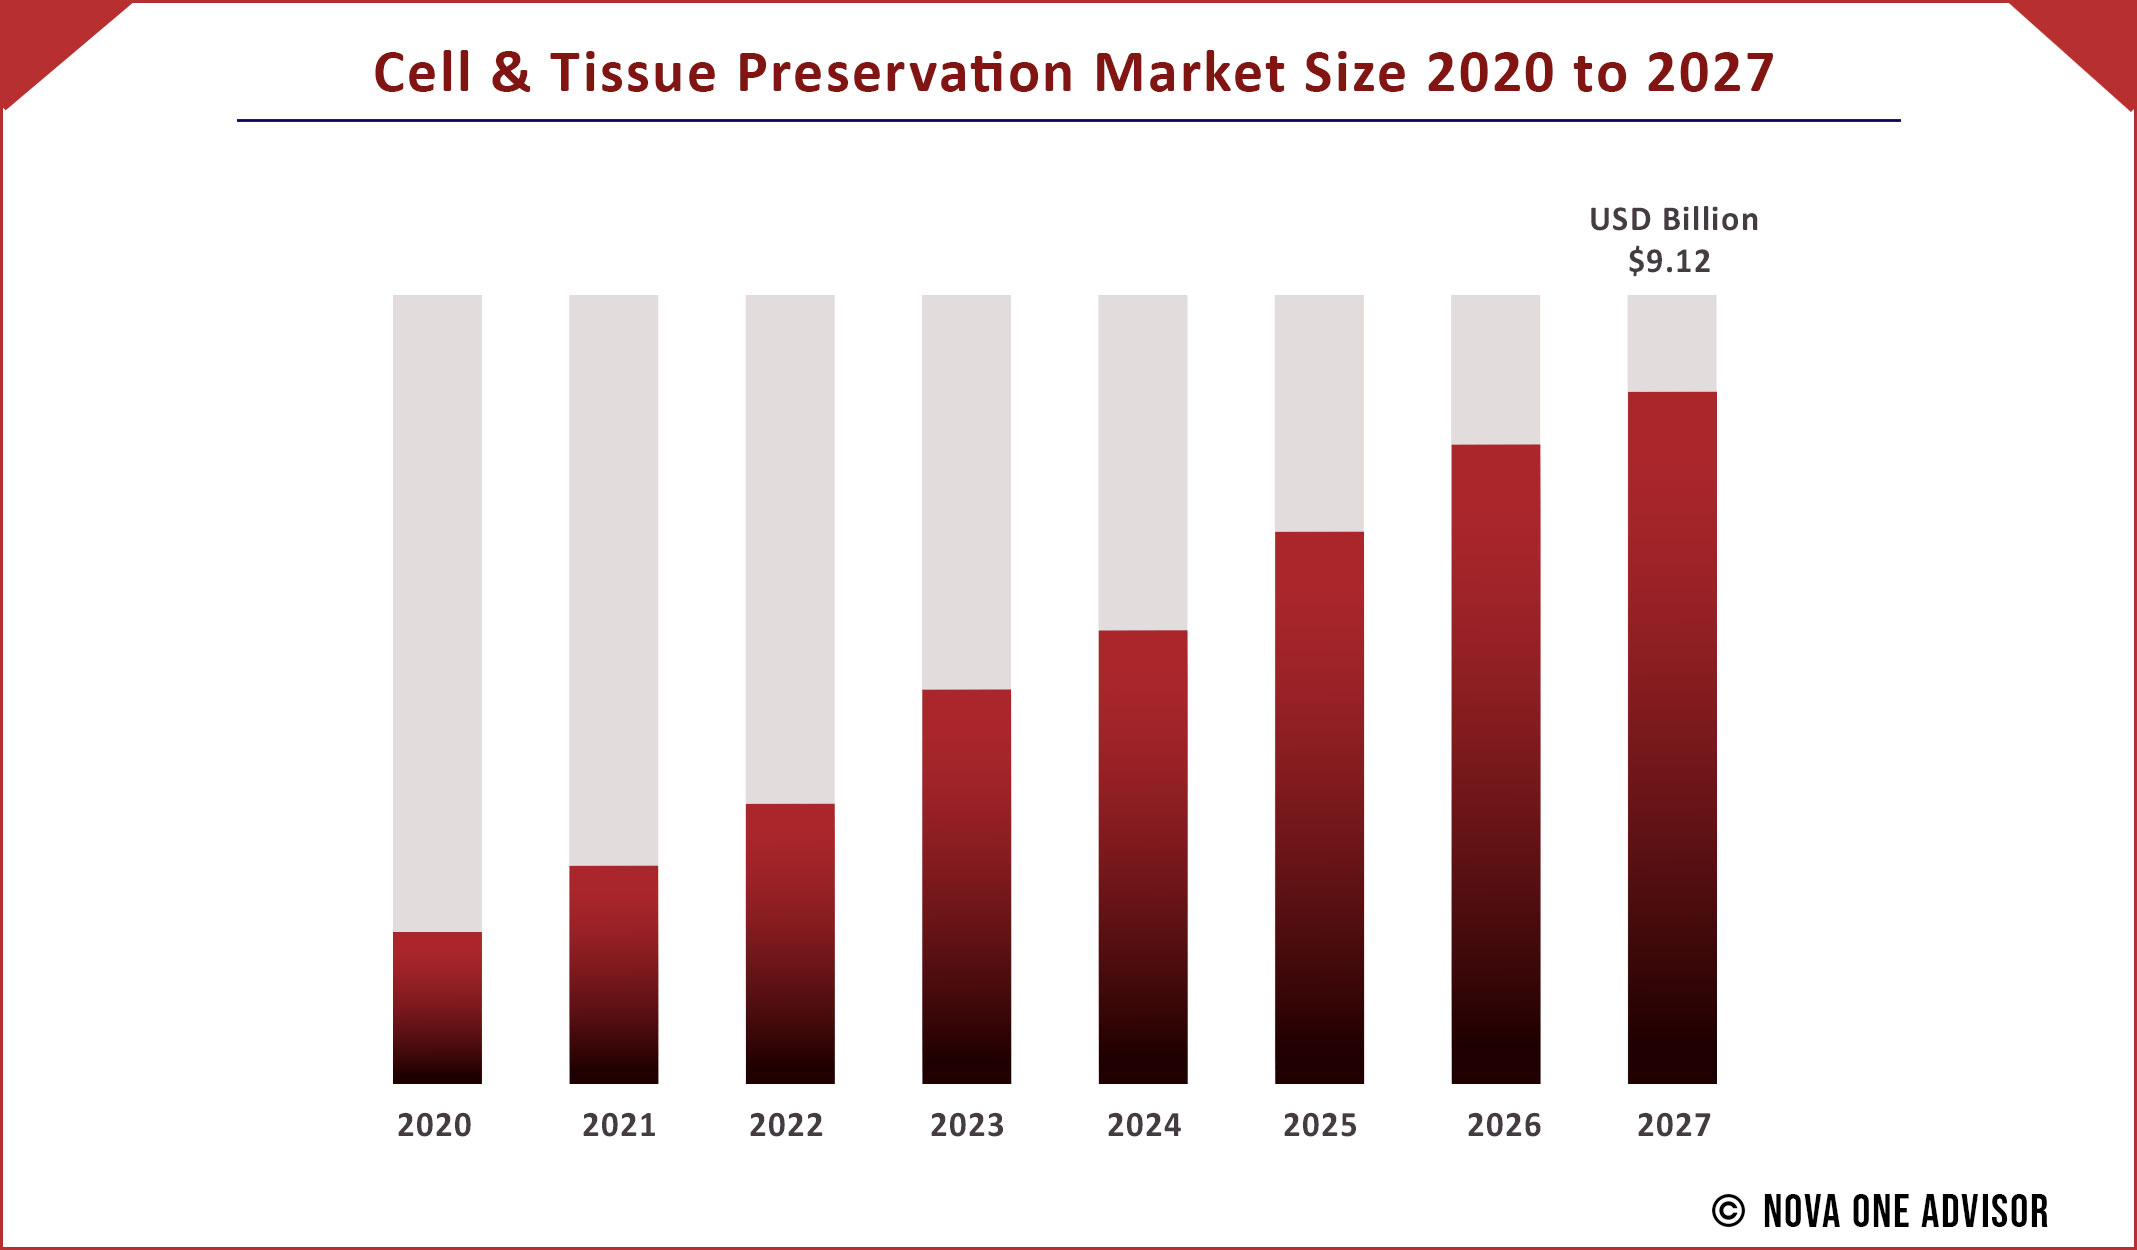 Cell & Tissue Preservation Market Size 2020 to 2027